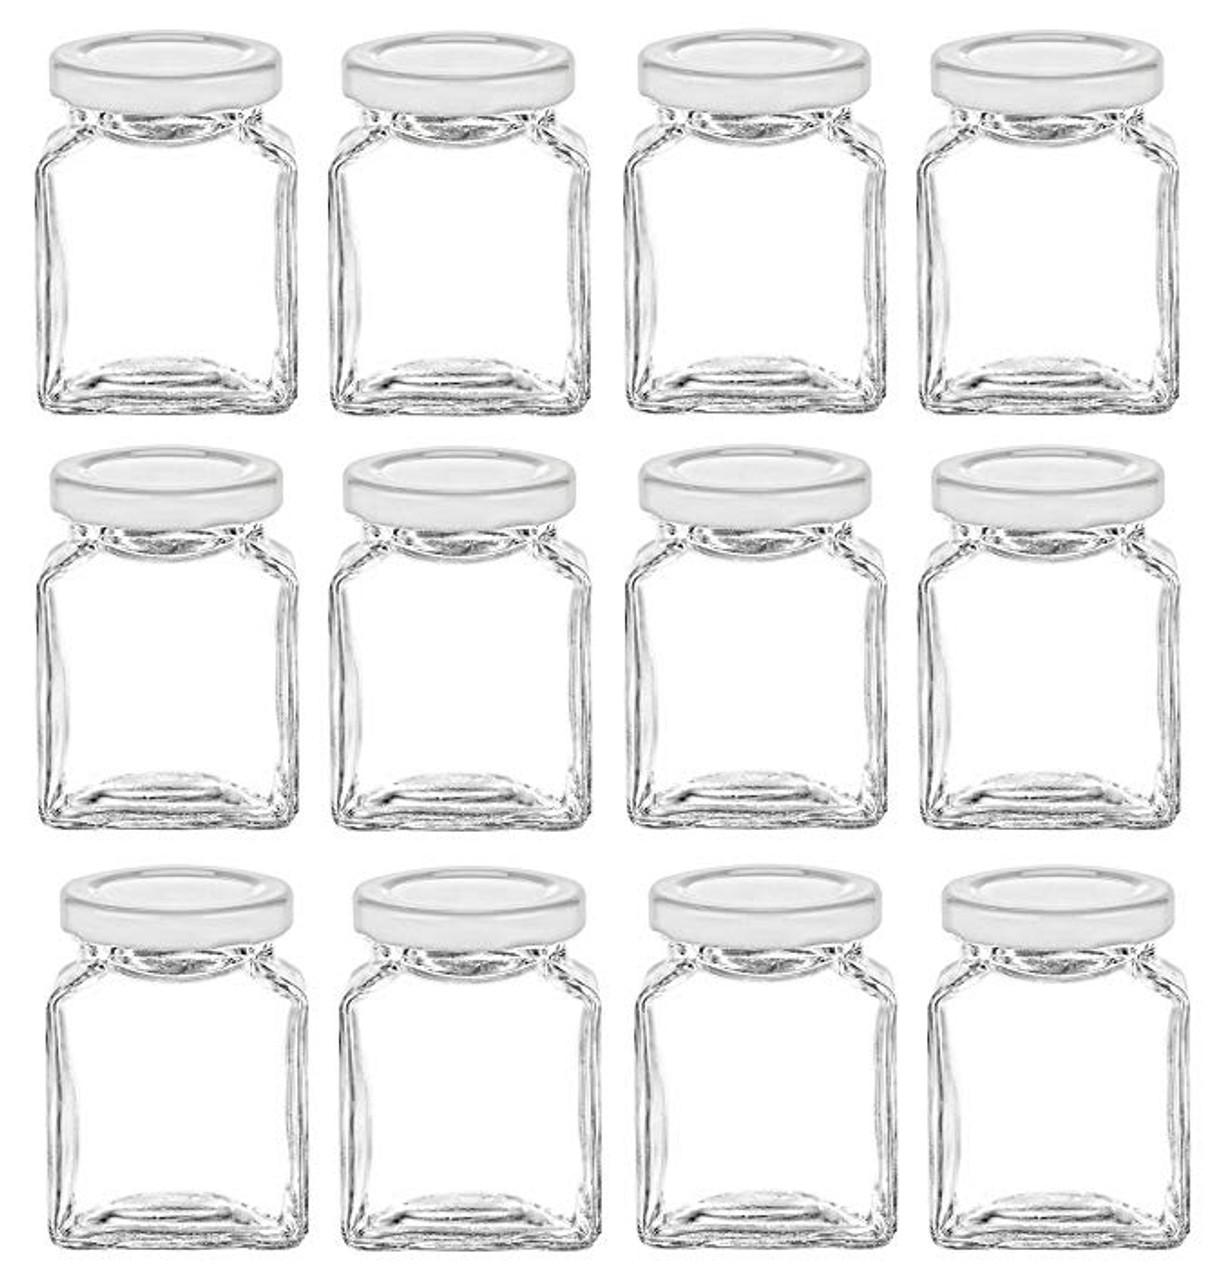 6 oz Cube Square Glass Jars with White Lids for Honey, Jam, Canning by Nakpunar